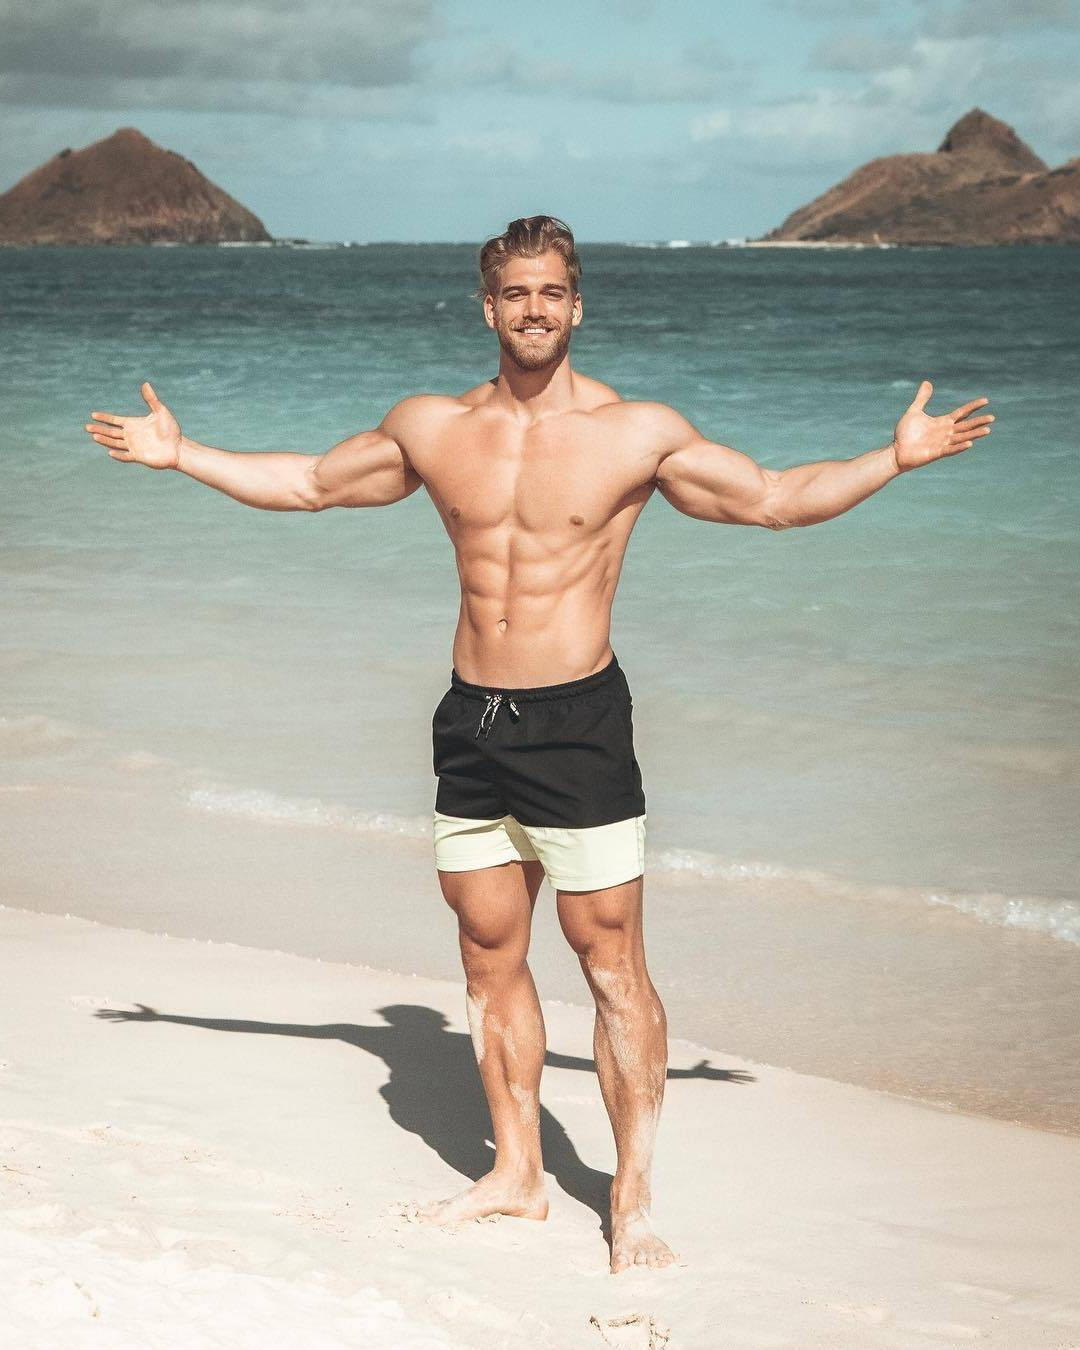 sexy-blond-fit-shirtless-bearded-muscle-hunk-beach-bro-abs-smiling-big-biceps